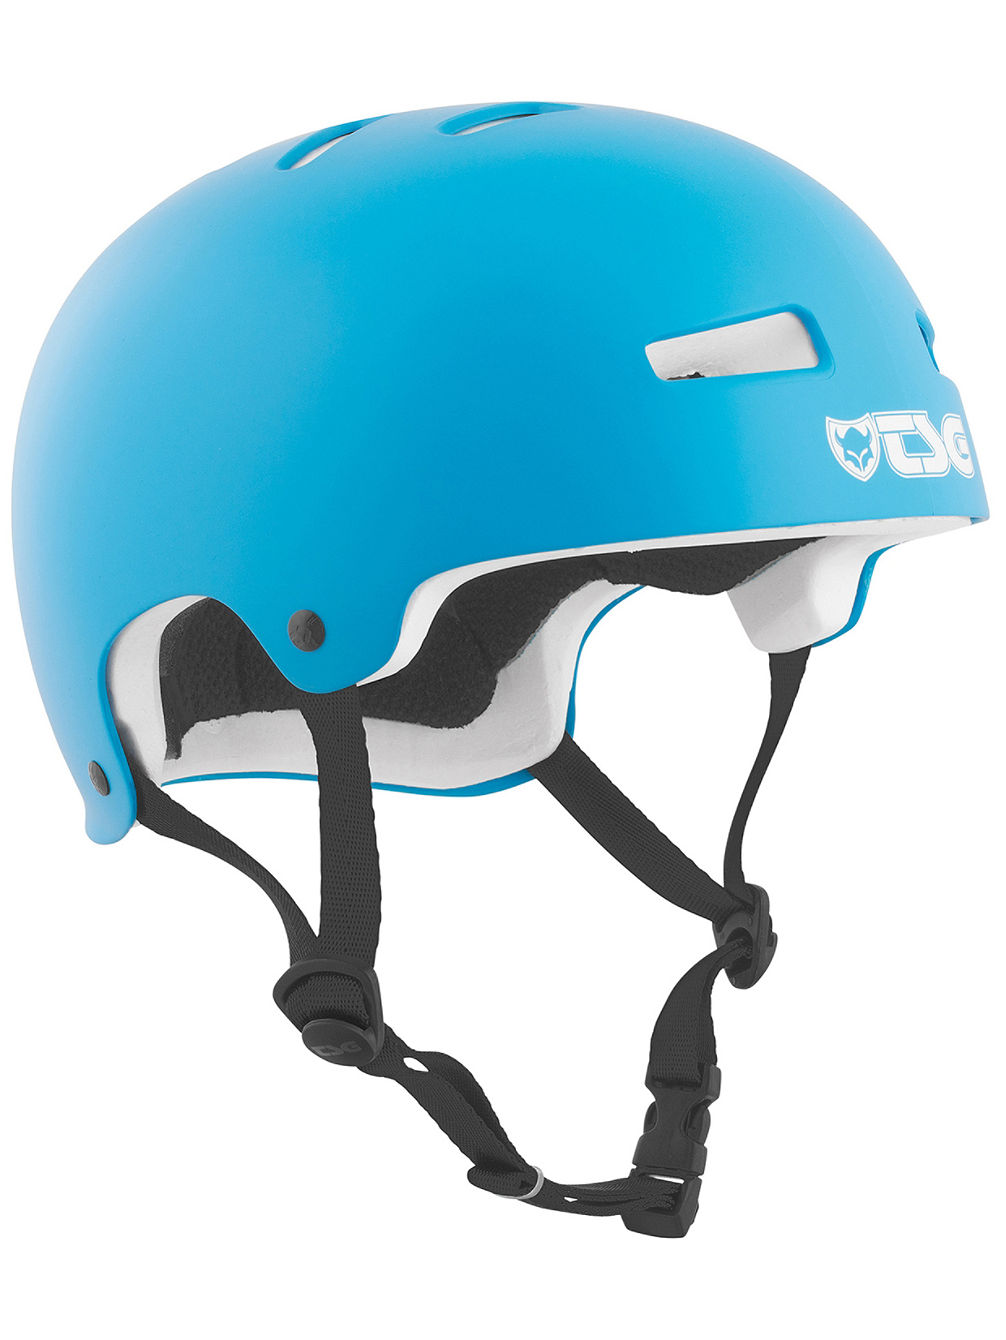 Evolution Youth Solid Color Helmet